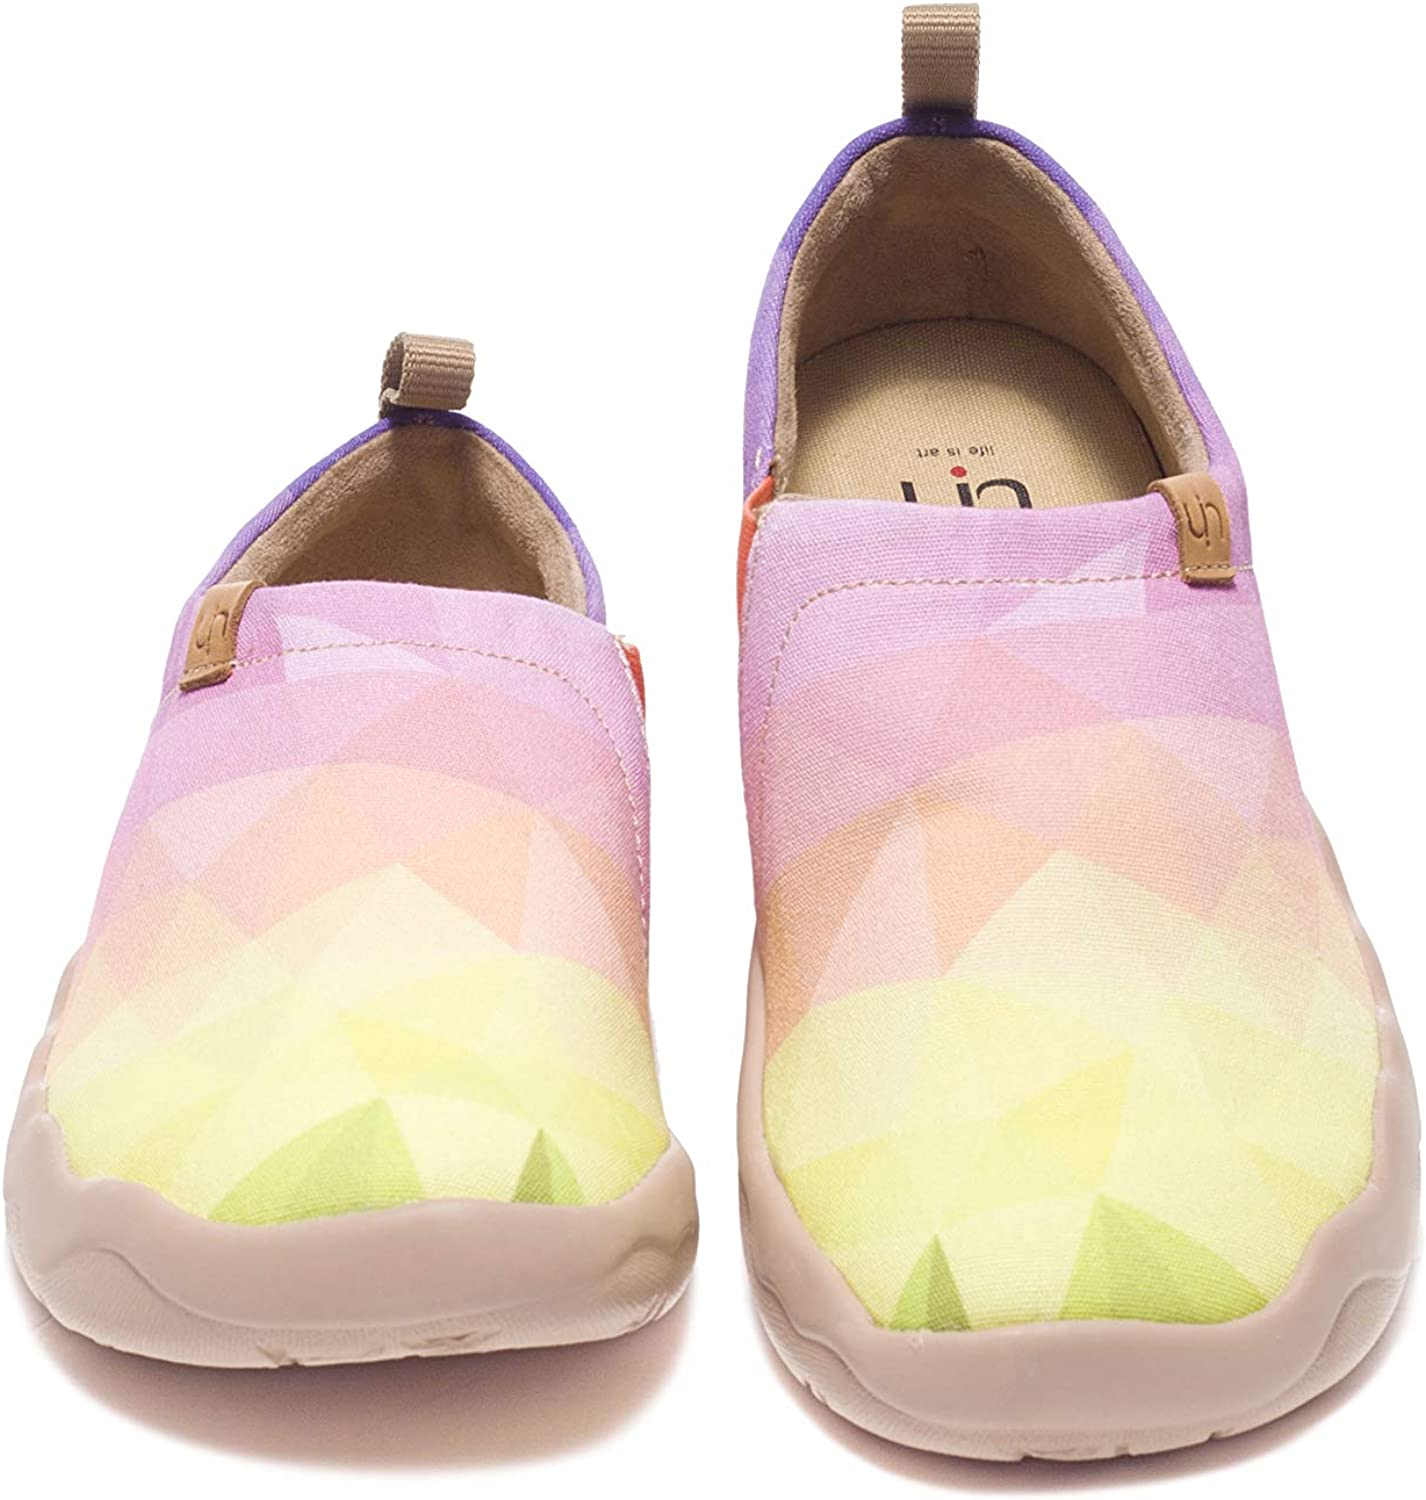 UIN Women's Sunshine Printed Canvas Loafer shoes Light Yellow